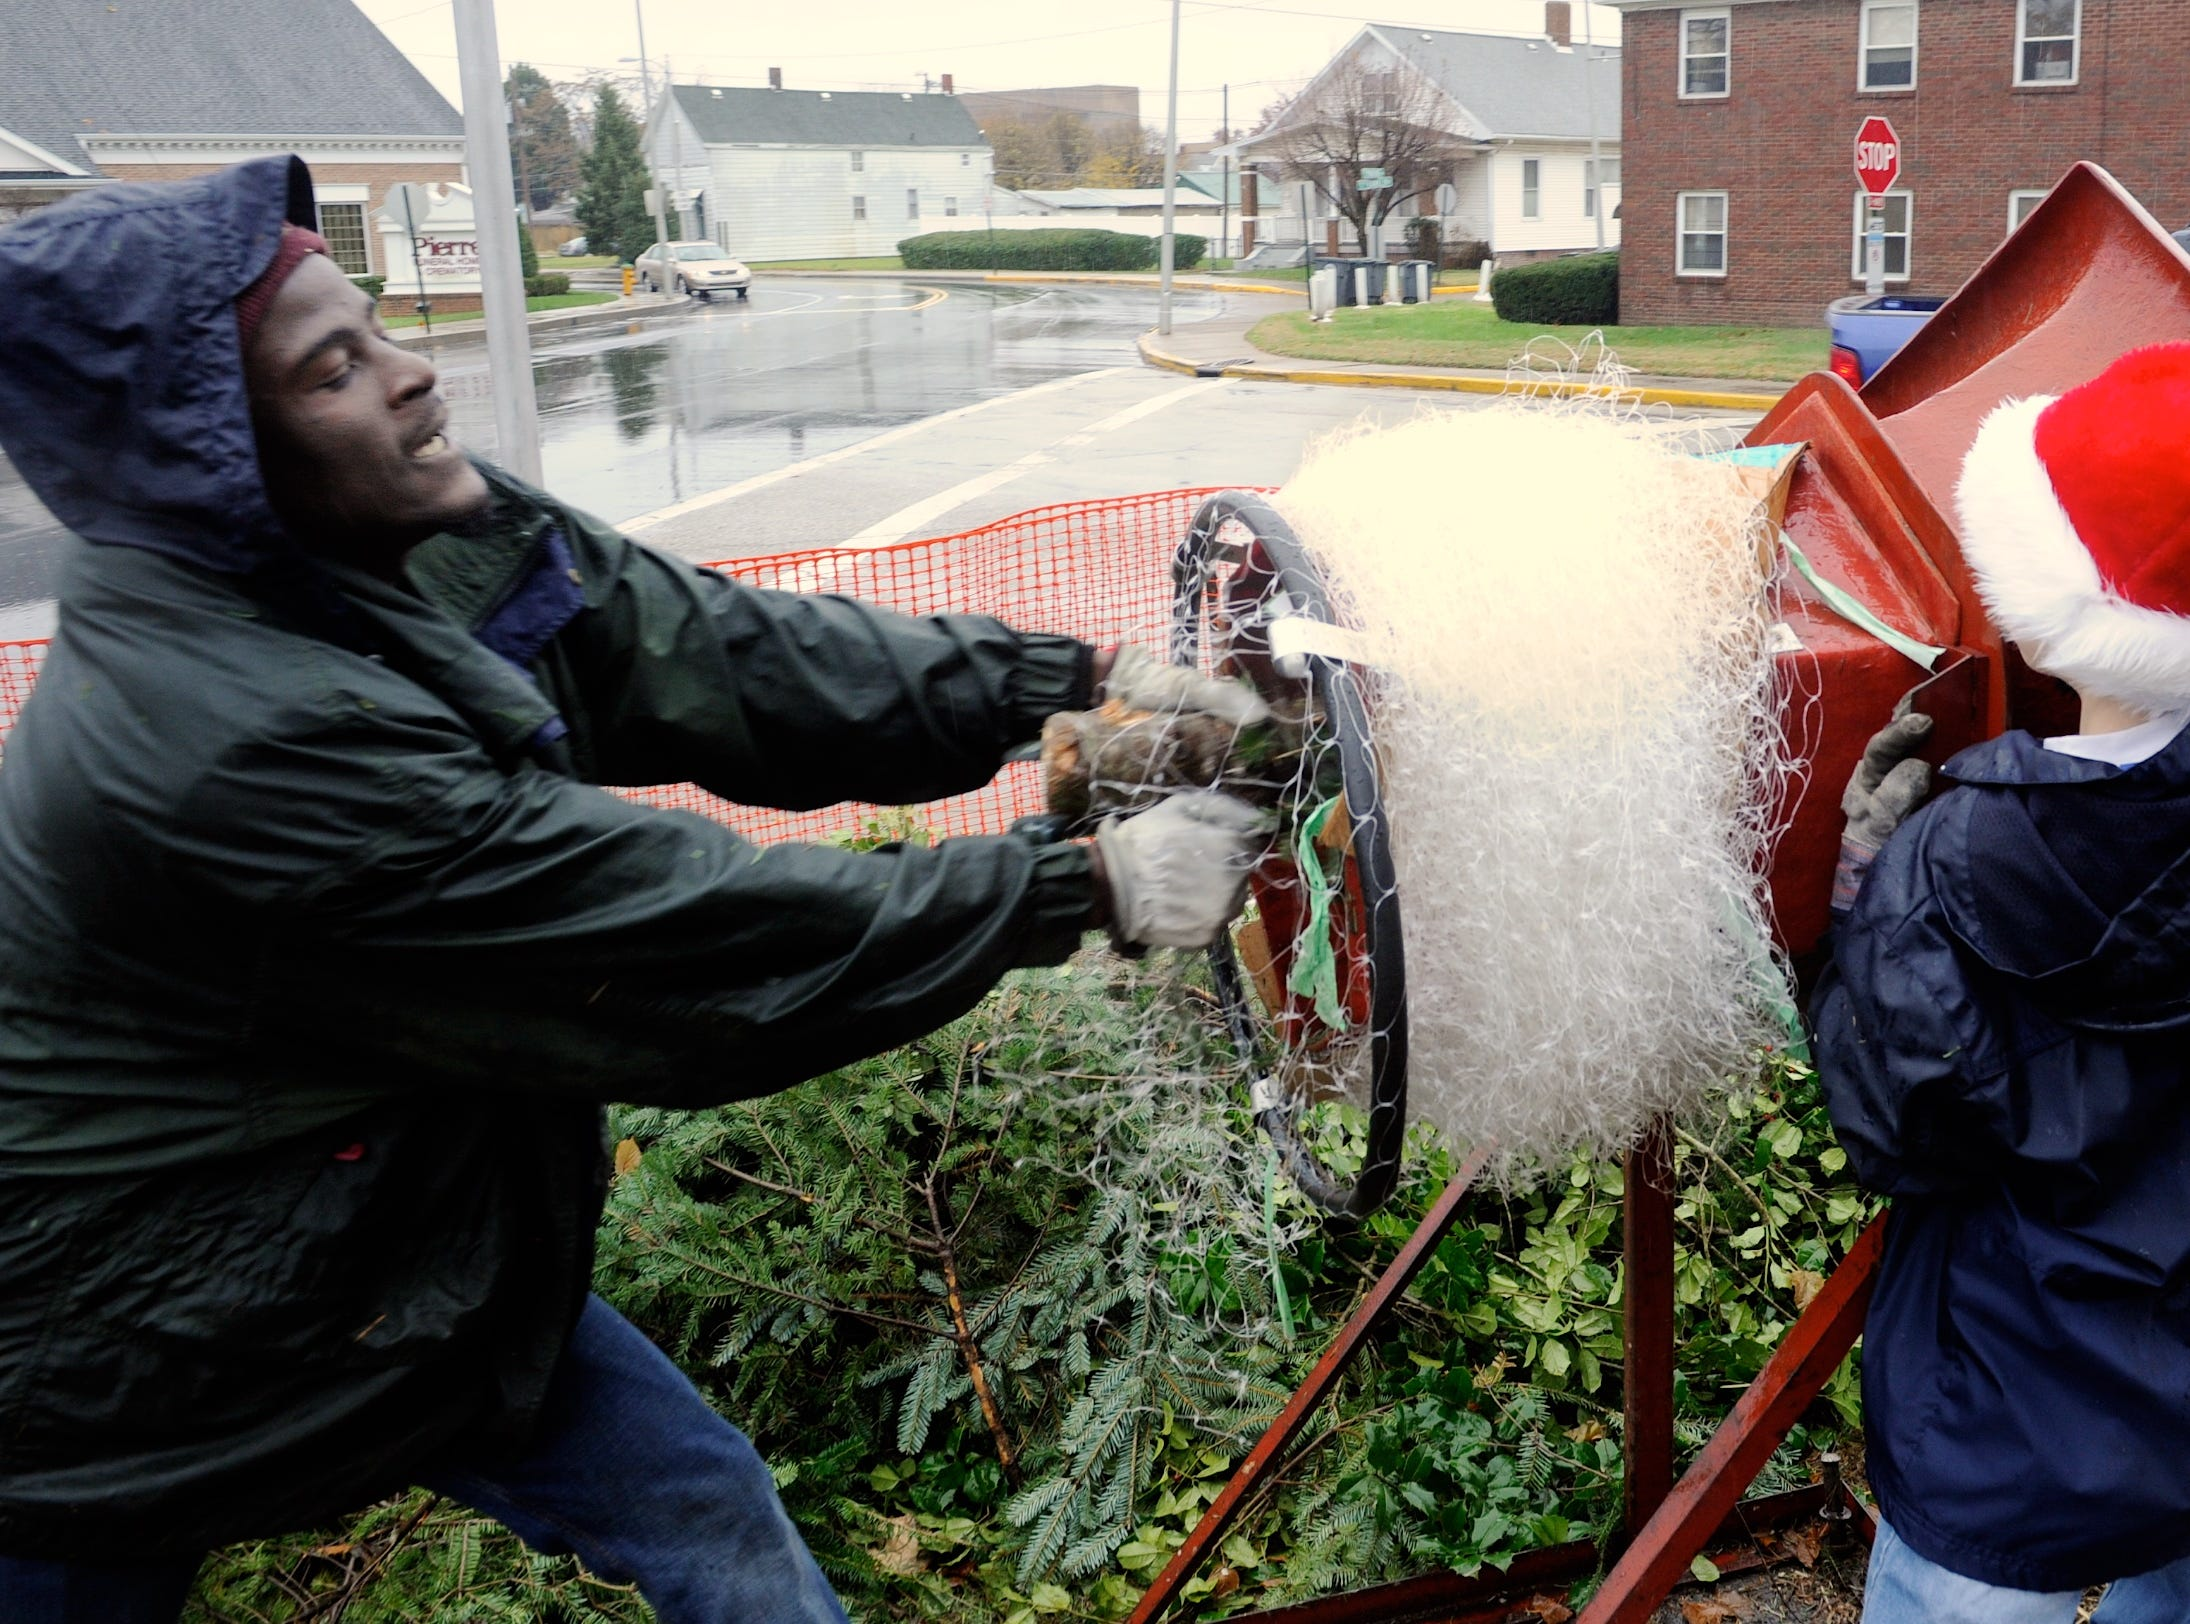 Working in front of Sacred Heart Catholic Church, (L-R) Steeve Jean, Joseph Helfrich and Greg Mayer with Boy Scout Troop 399 struggle to push and pull a Christmas tree through a tree netter Saturday as the troop continues it's 61 year tradition, November 28, 2015.